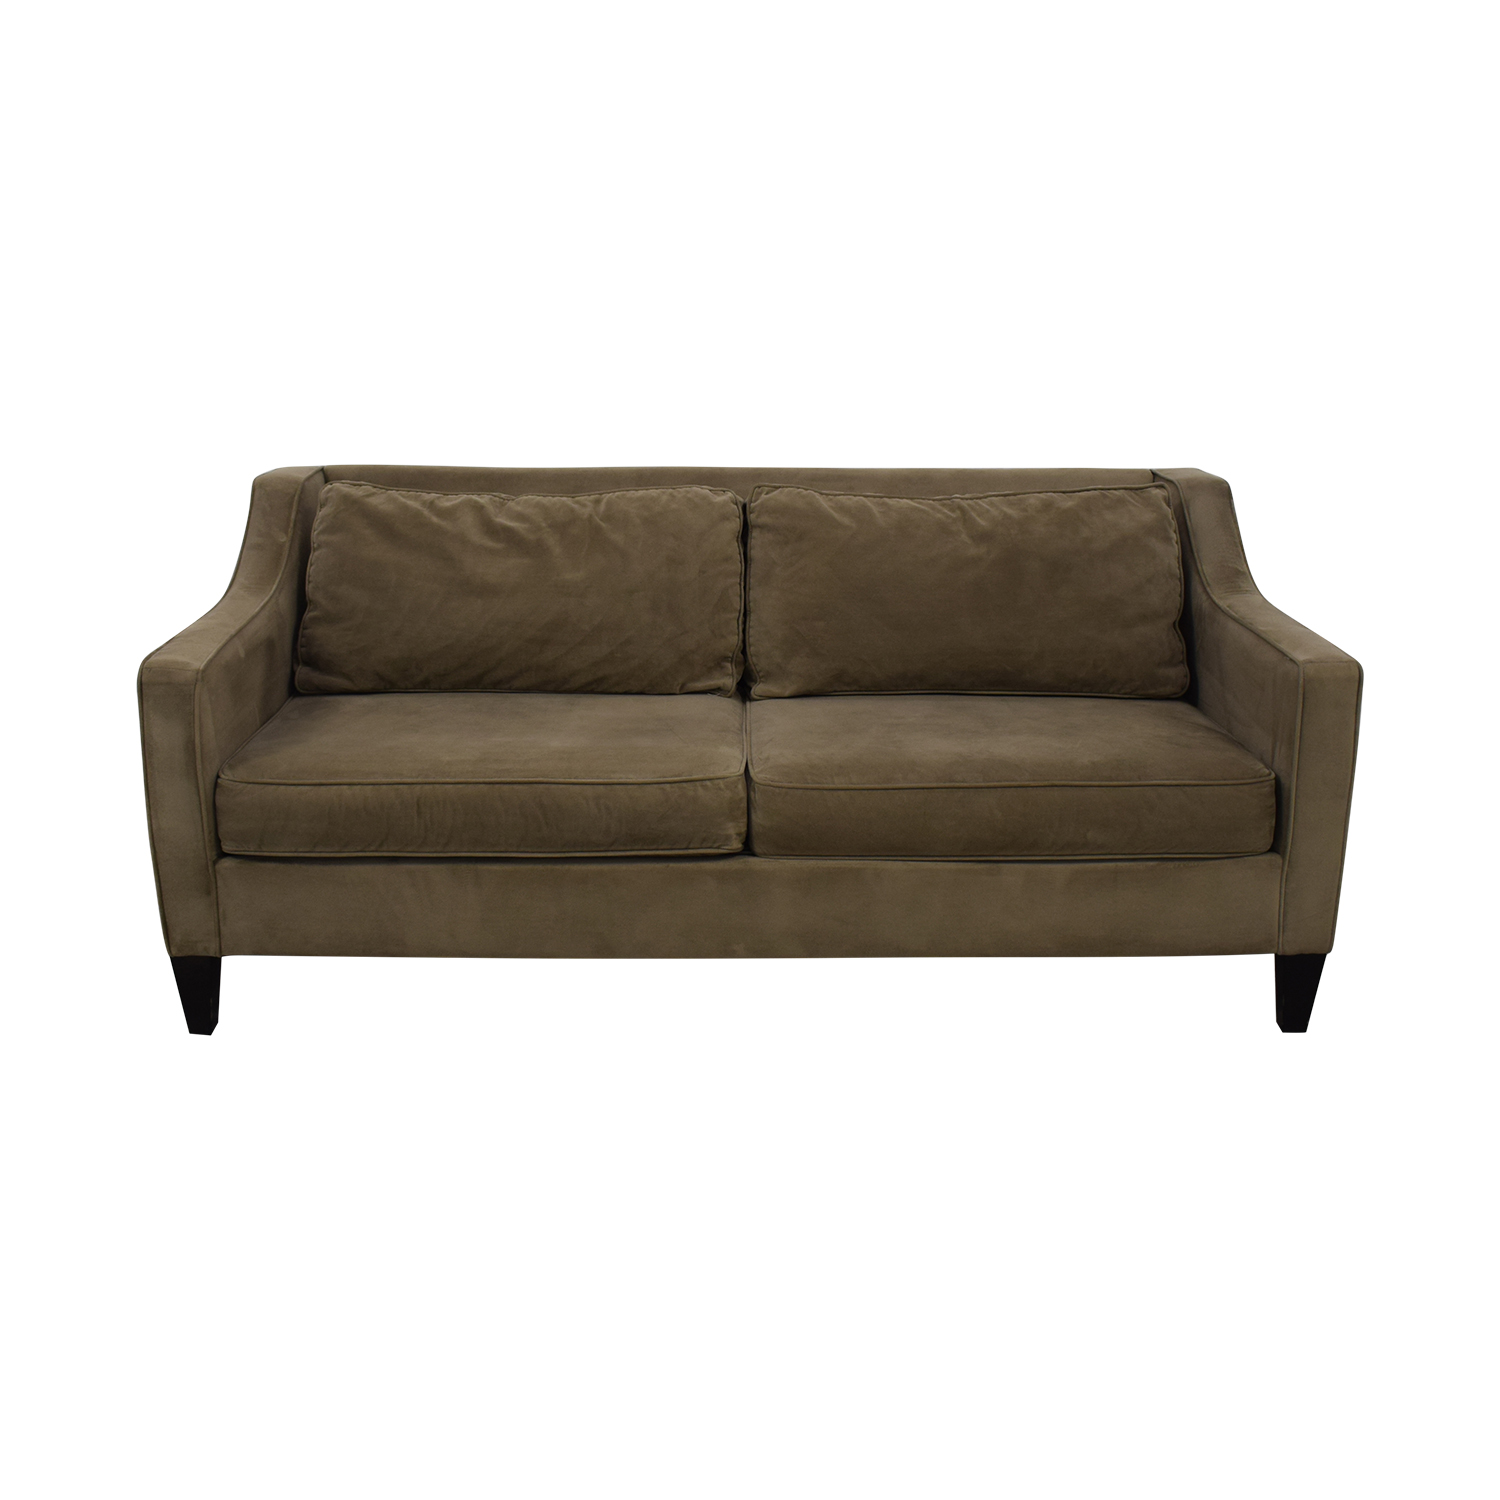 West Elm West Elm Paidge Sofa second hand